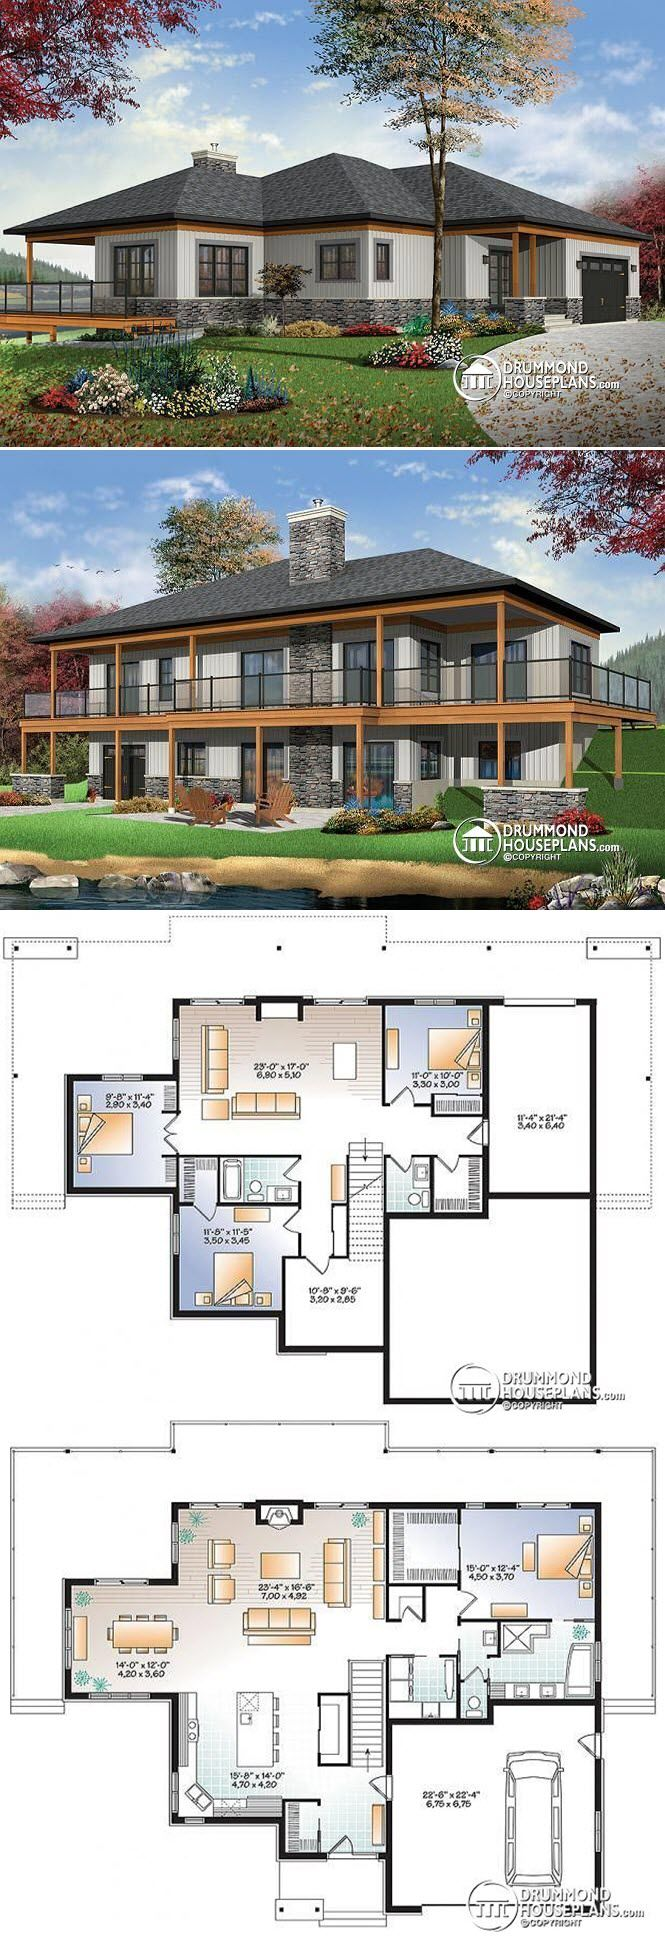 Pin By Maria Duran On 2 Floors 4 Bedrooms House Plans Vintage House Plans Small Villa